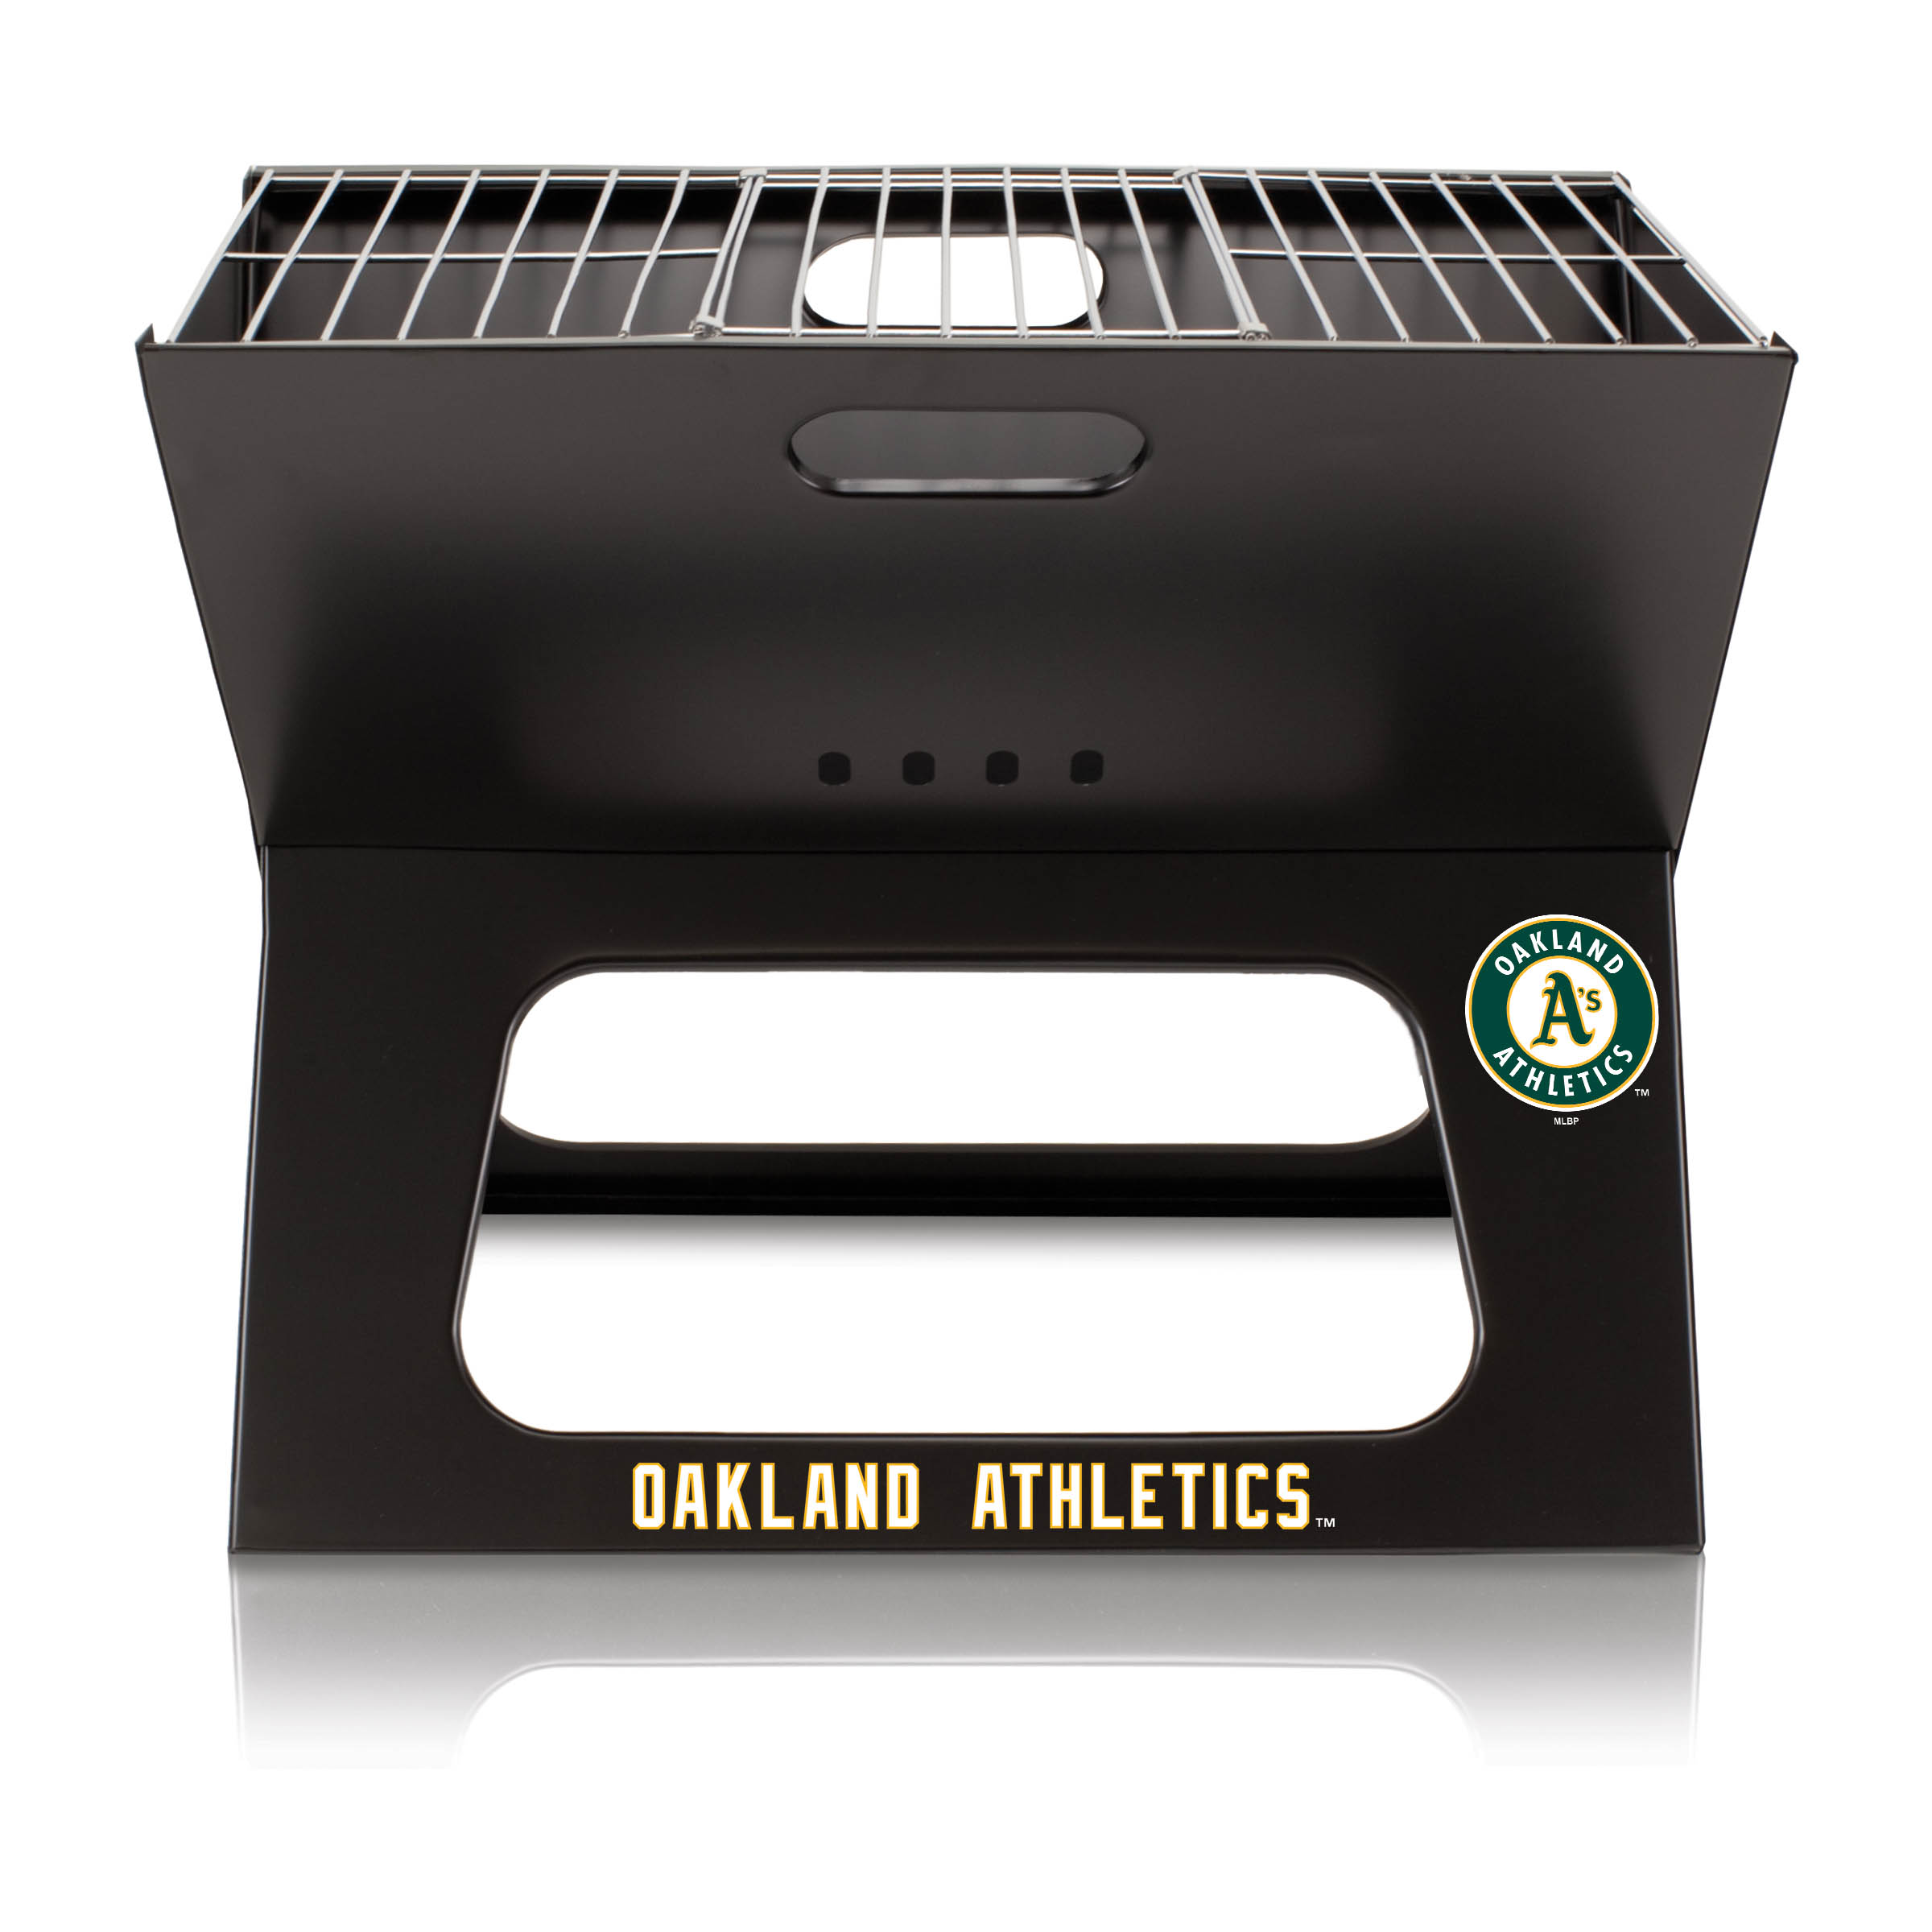 Oakland Athletics X-Grill Portable BBQ - No Size